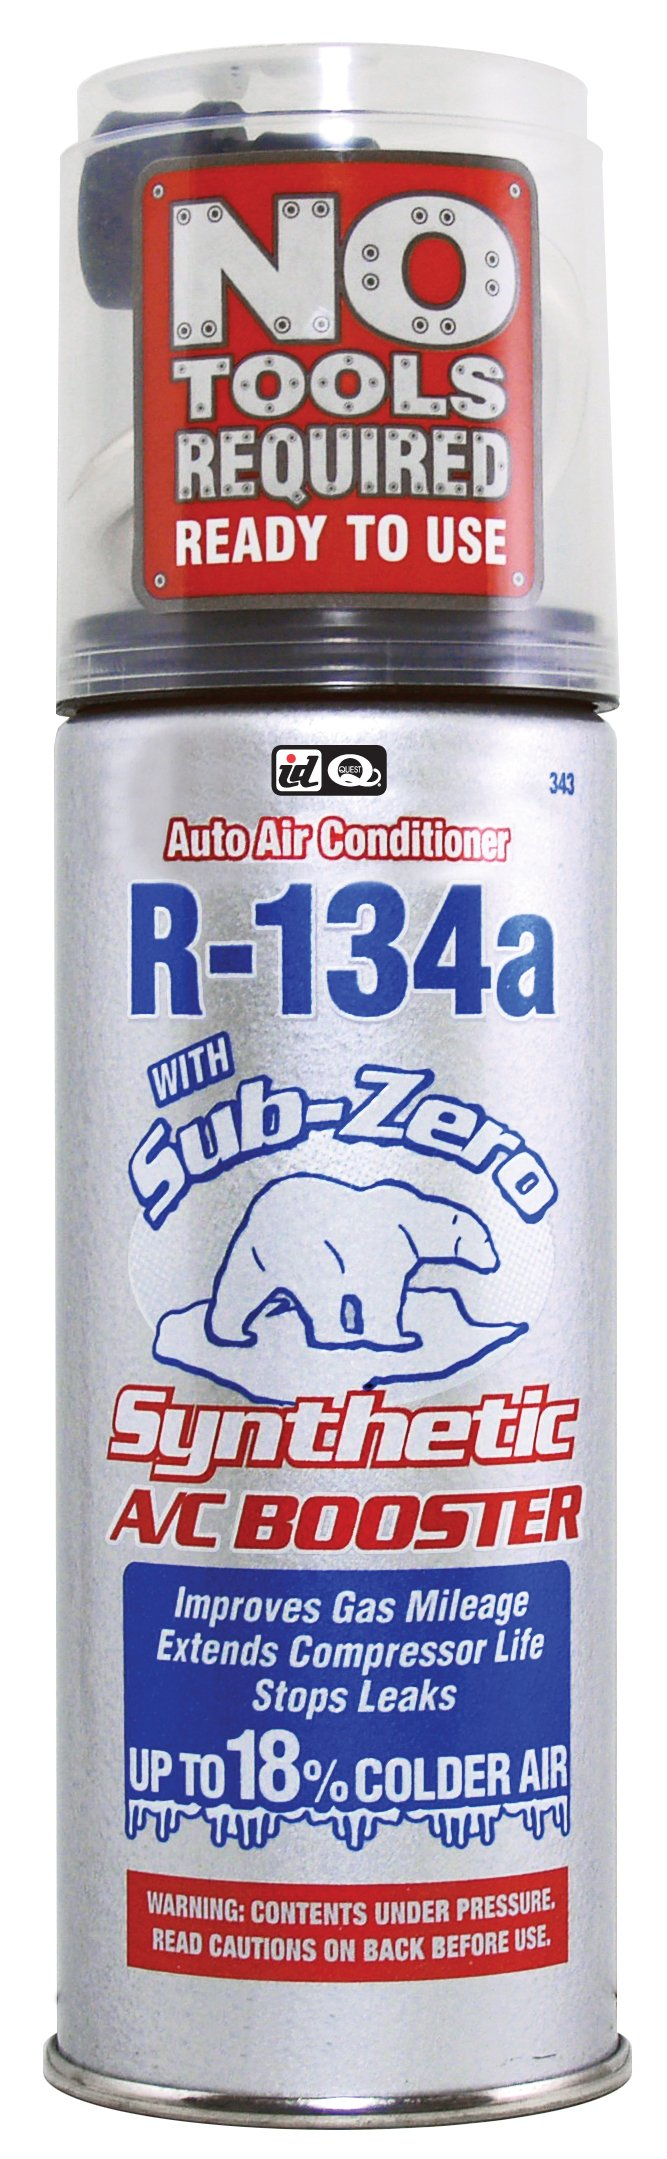 Interdynamics Sub-Zero Synthetic Refrigerant R-134a (14 ounces), 343 by Interdynamics